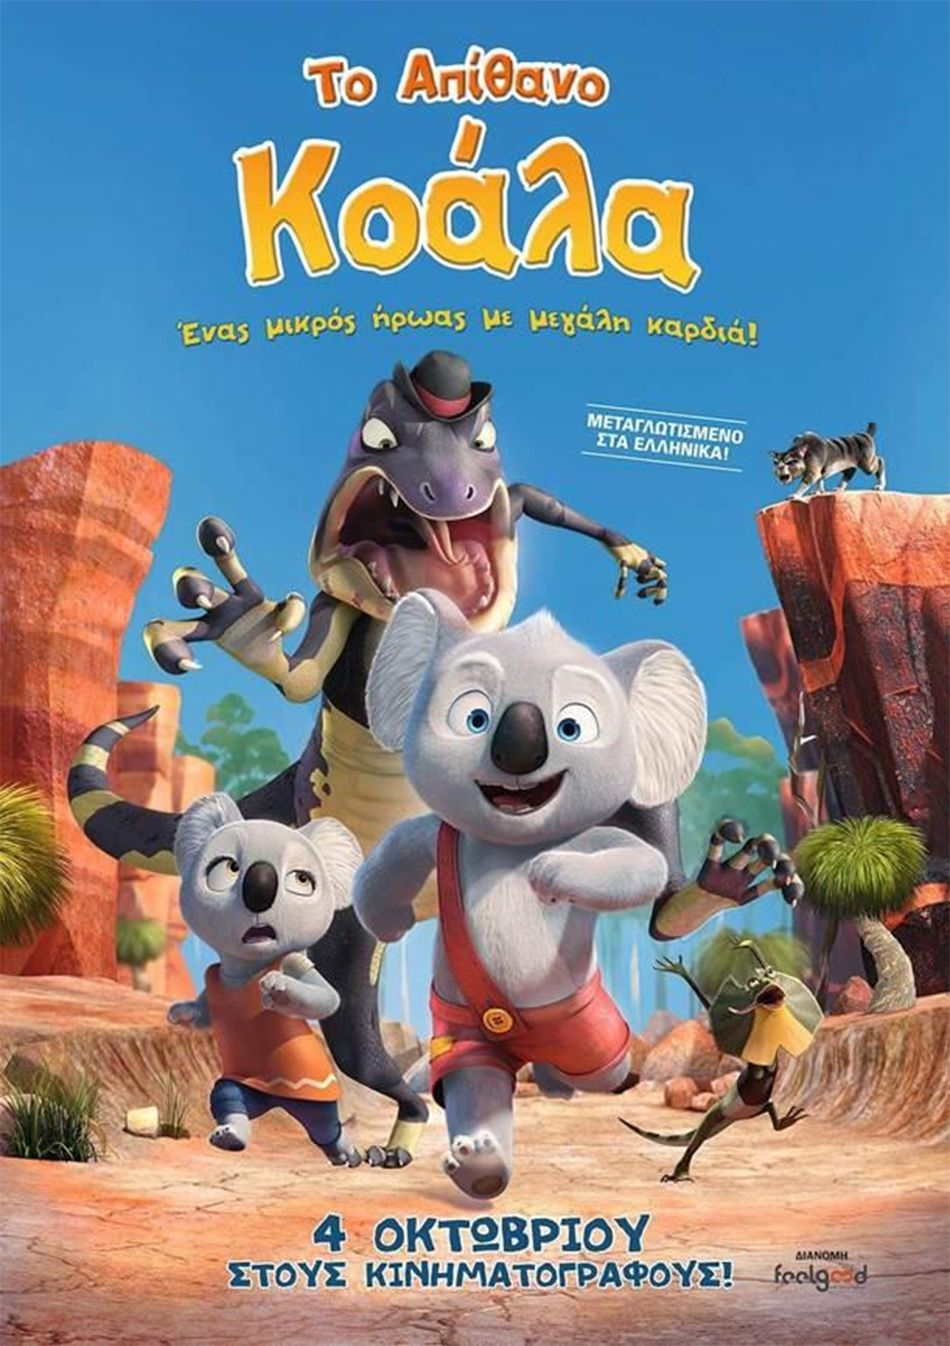 To Aπίθανο Κοάλα  (Blinky Bill the movie) Poster